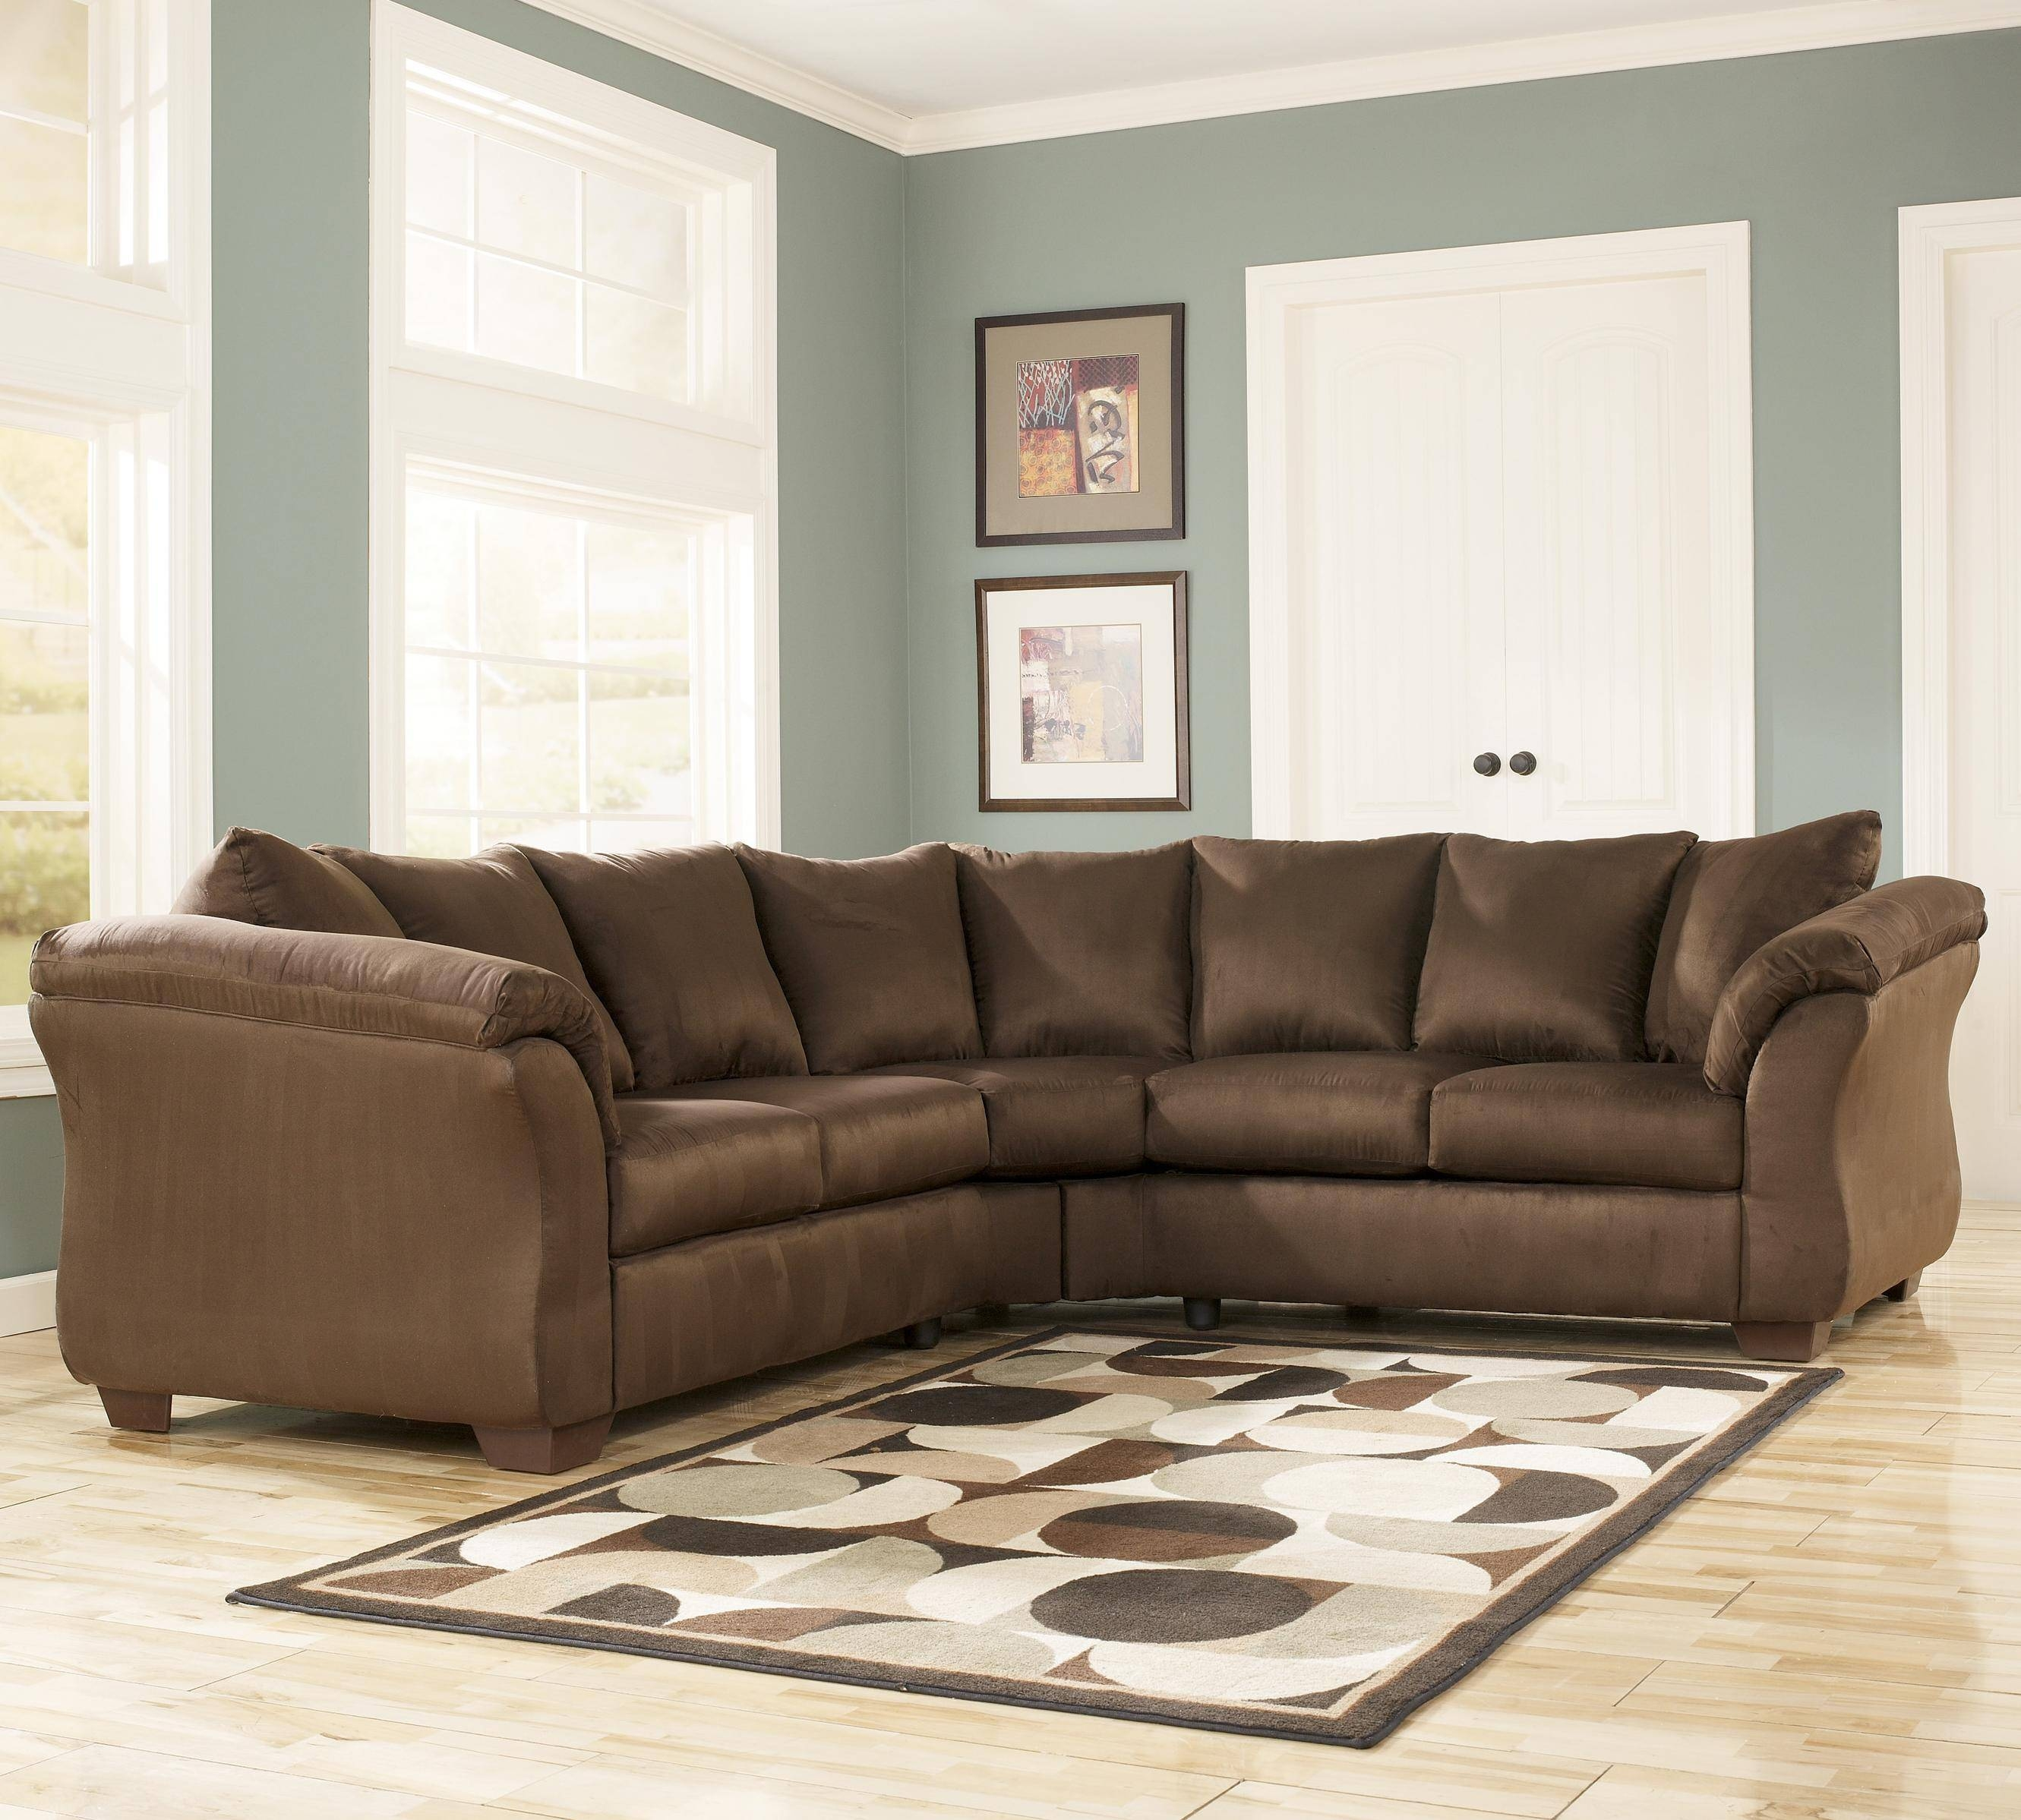 Contemporary Sectional Sofa With Sweeping Pillow Armssignature throughout Signature Design Sectional Sofas (Image 5 of 15)